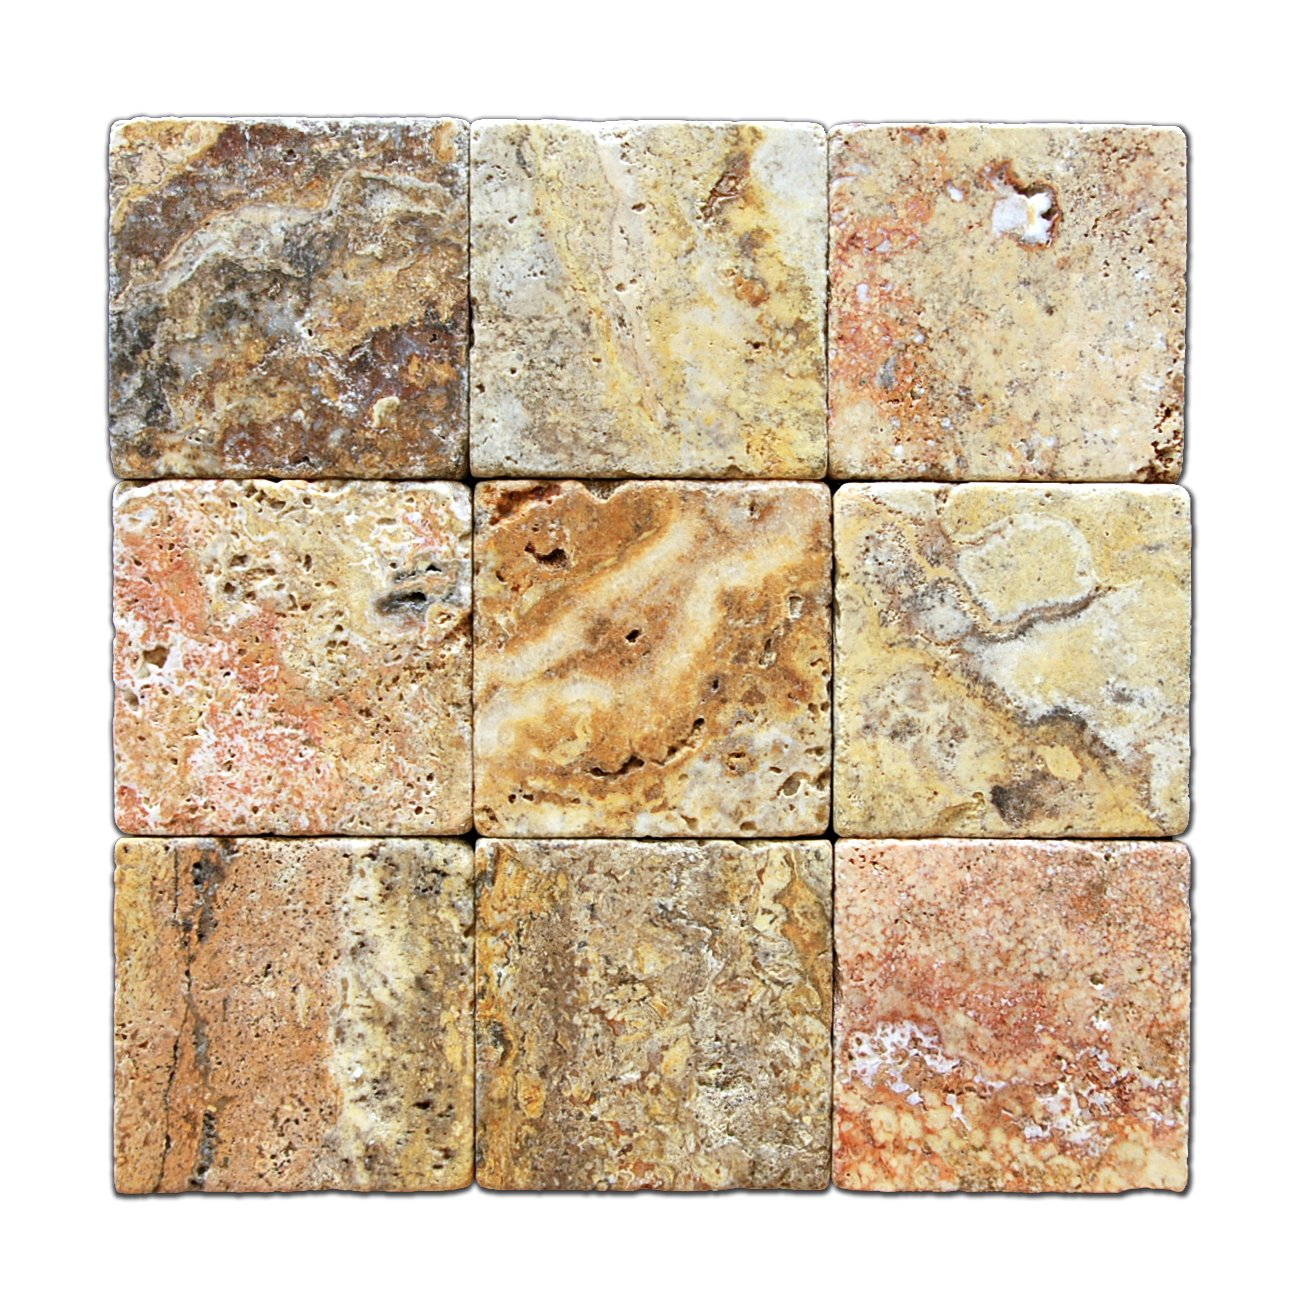 Scabos Travertine 4 X 4 Tile, Tumbled - Box of 5 sq. ft. by Oracle Tile & Stone